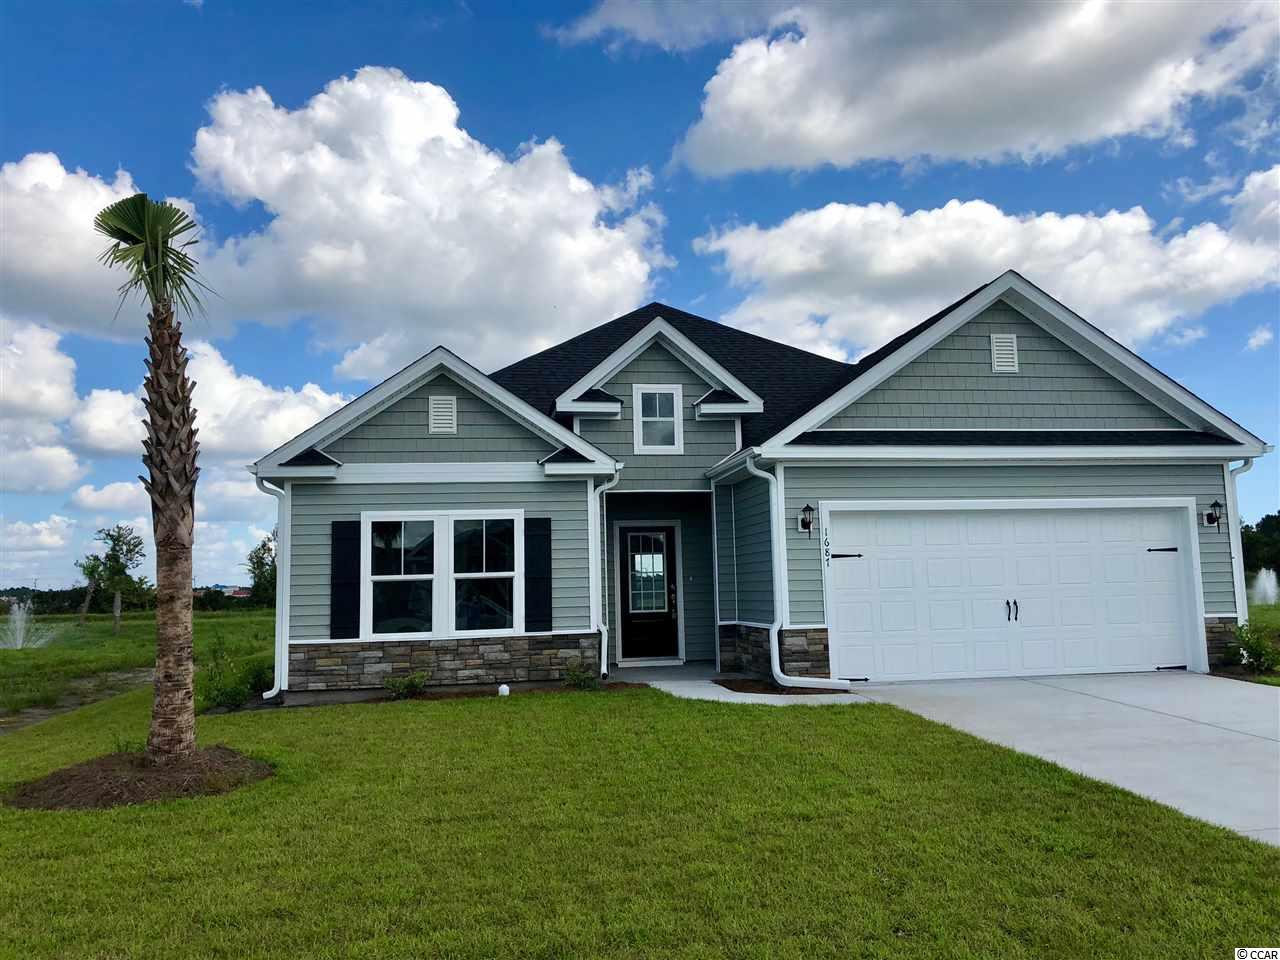 1687 Palmetto Palm Dr. 29579 - One of Myrtle Beach Homes for Sale